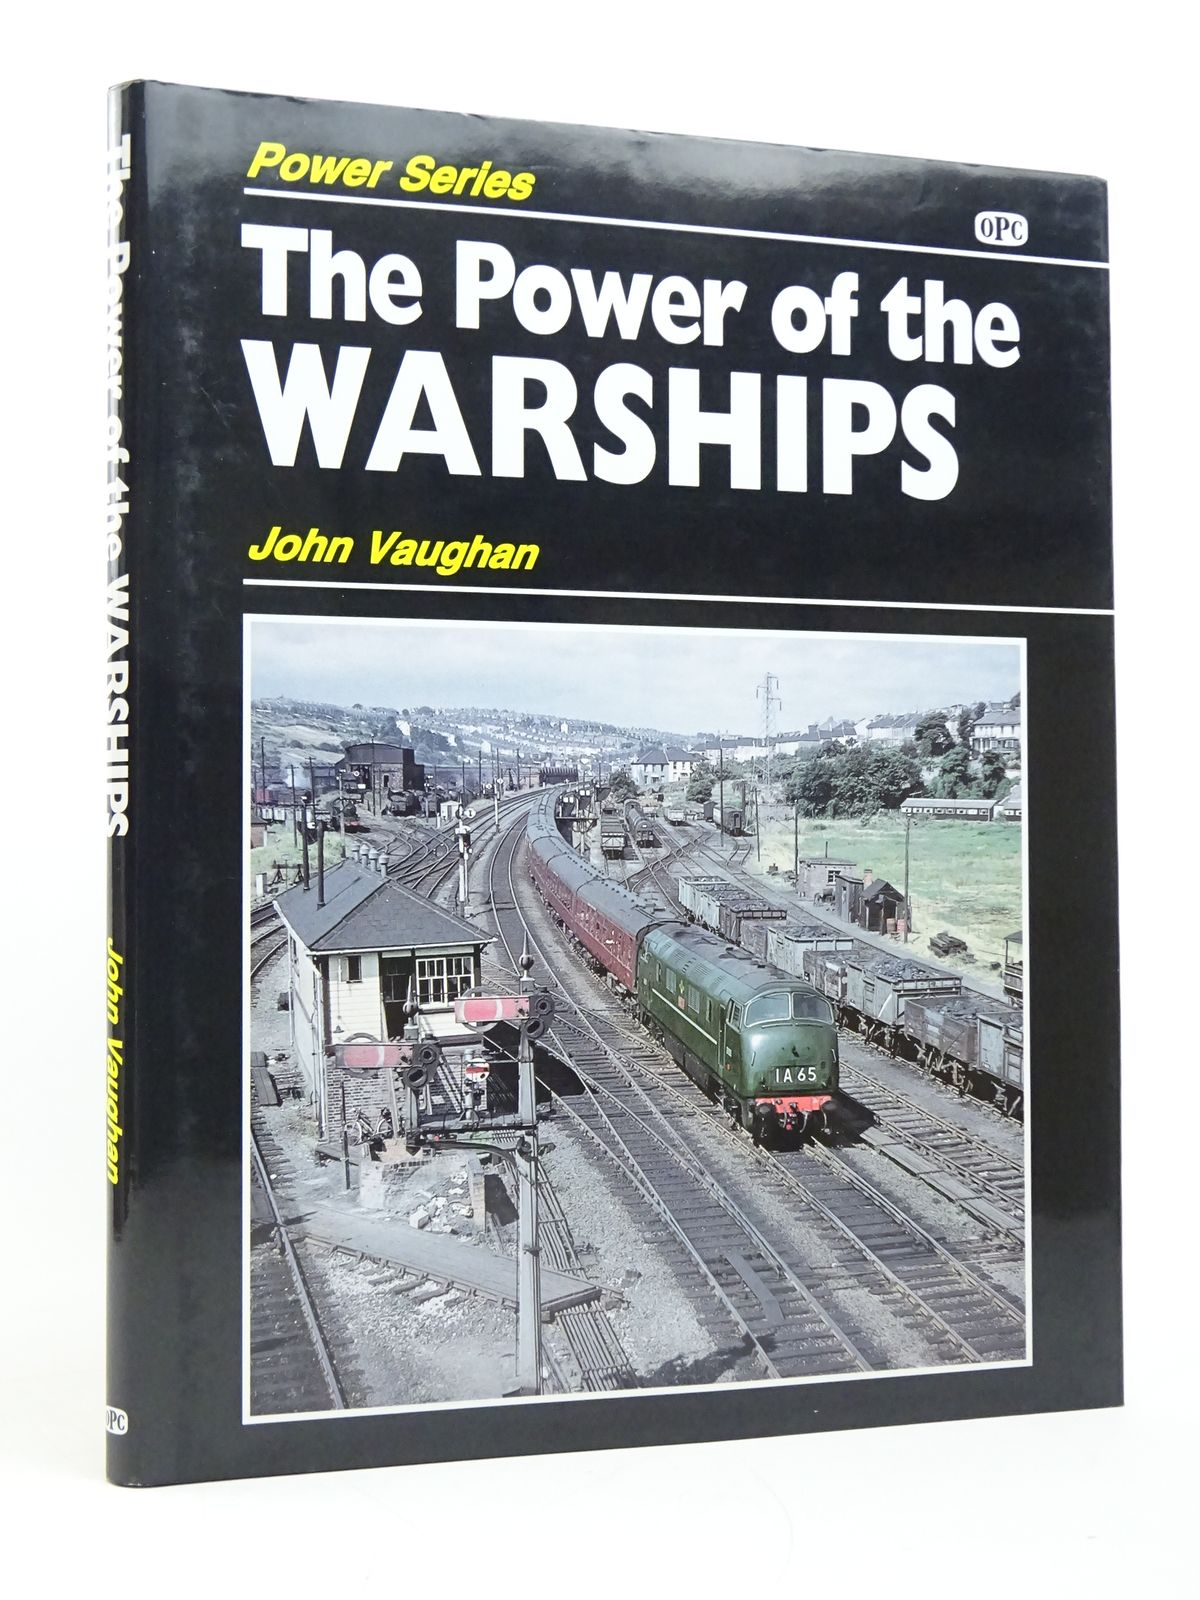 Photo of THE POWER OF THE WARSHIPS written by Vaughan, John published by O.P.C. (STOCK CODE: 1818075)  for sale by Stella & Rose's Books